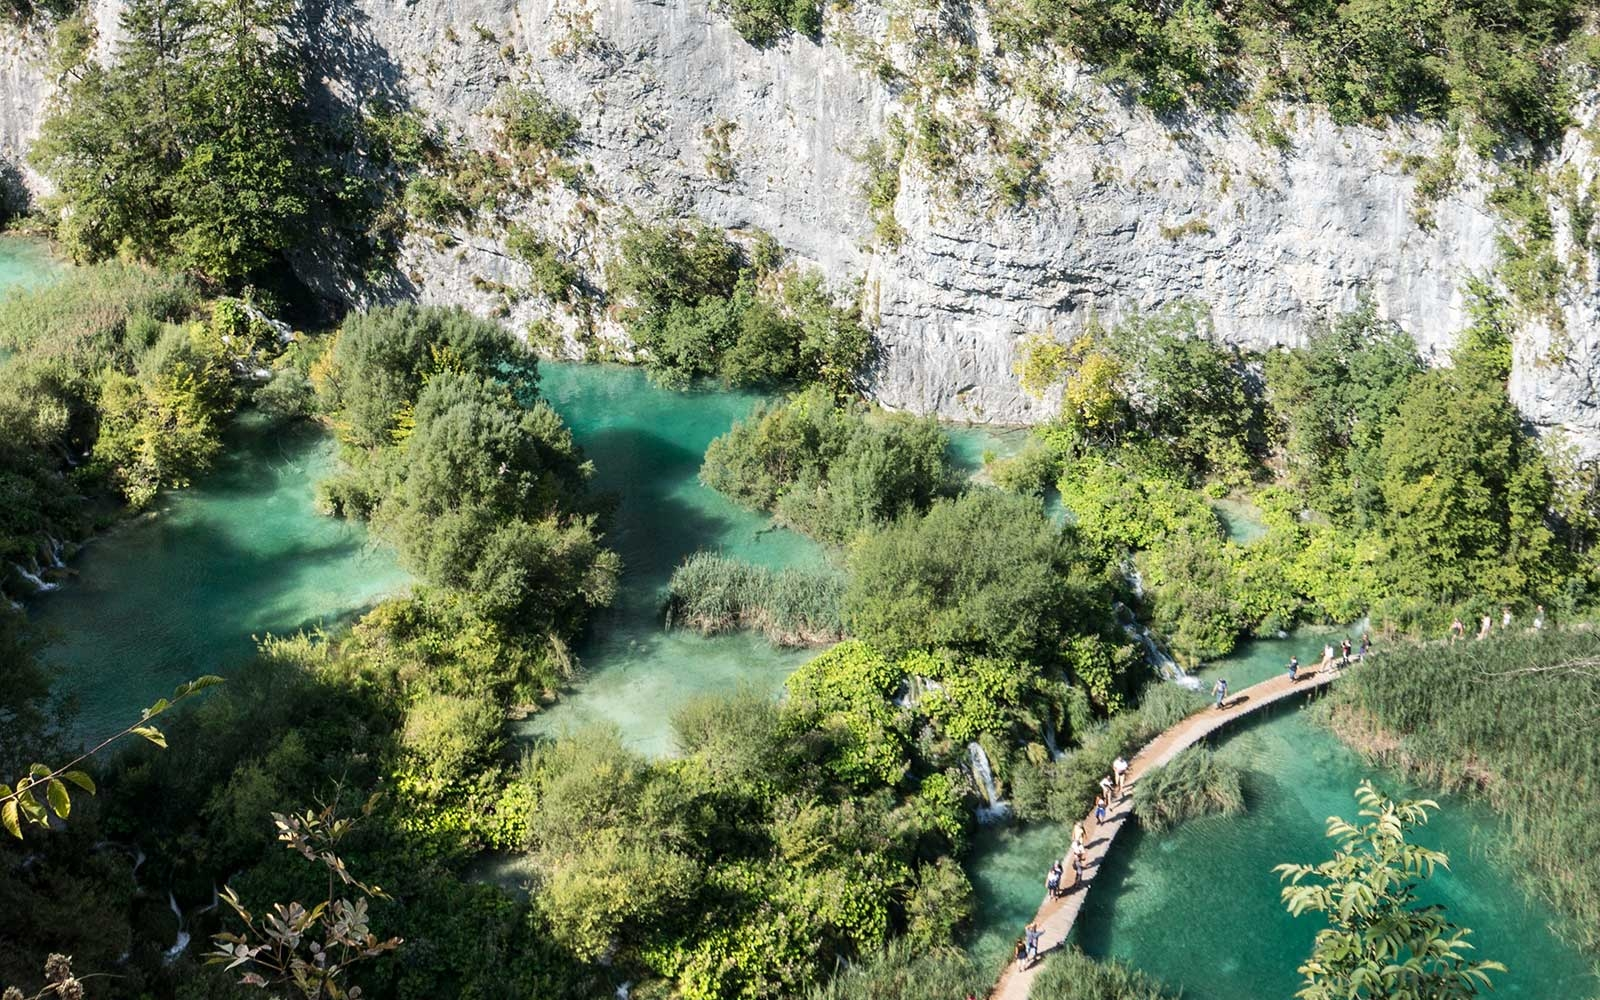 From Zagreb to Dubrovnik: A Drive Down Croatia's A1 Highway